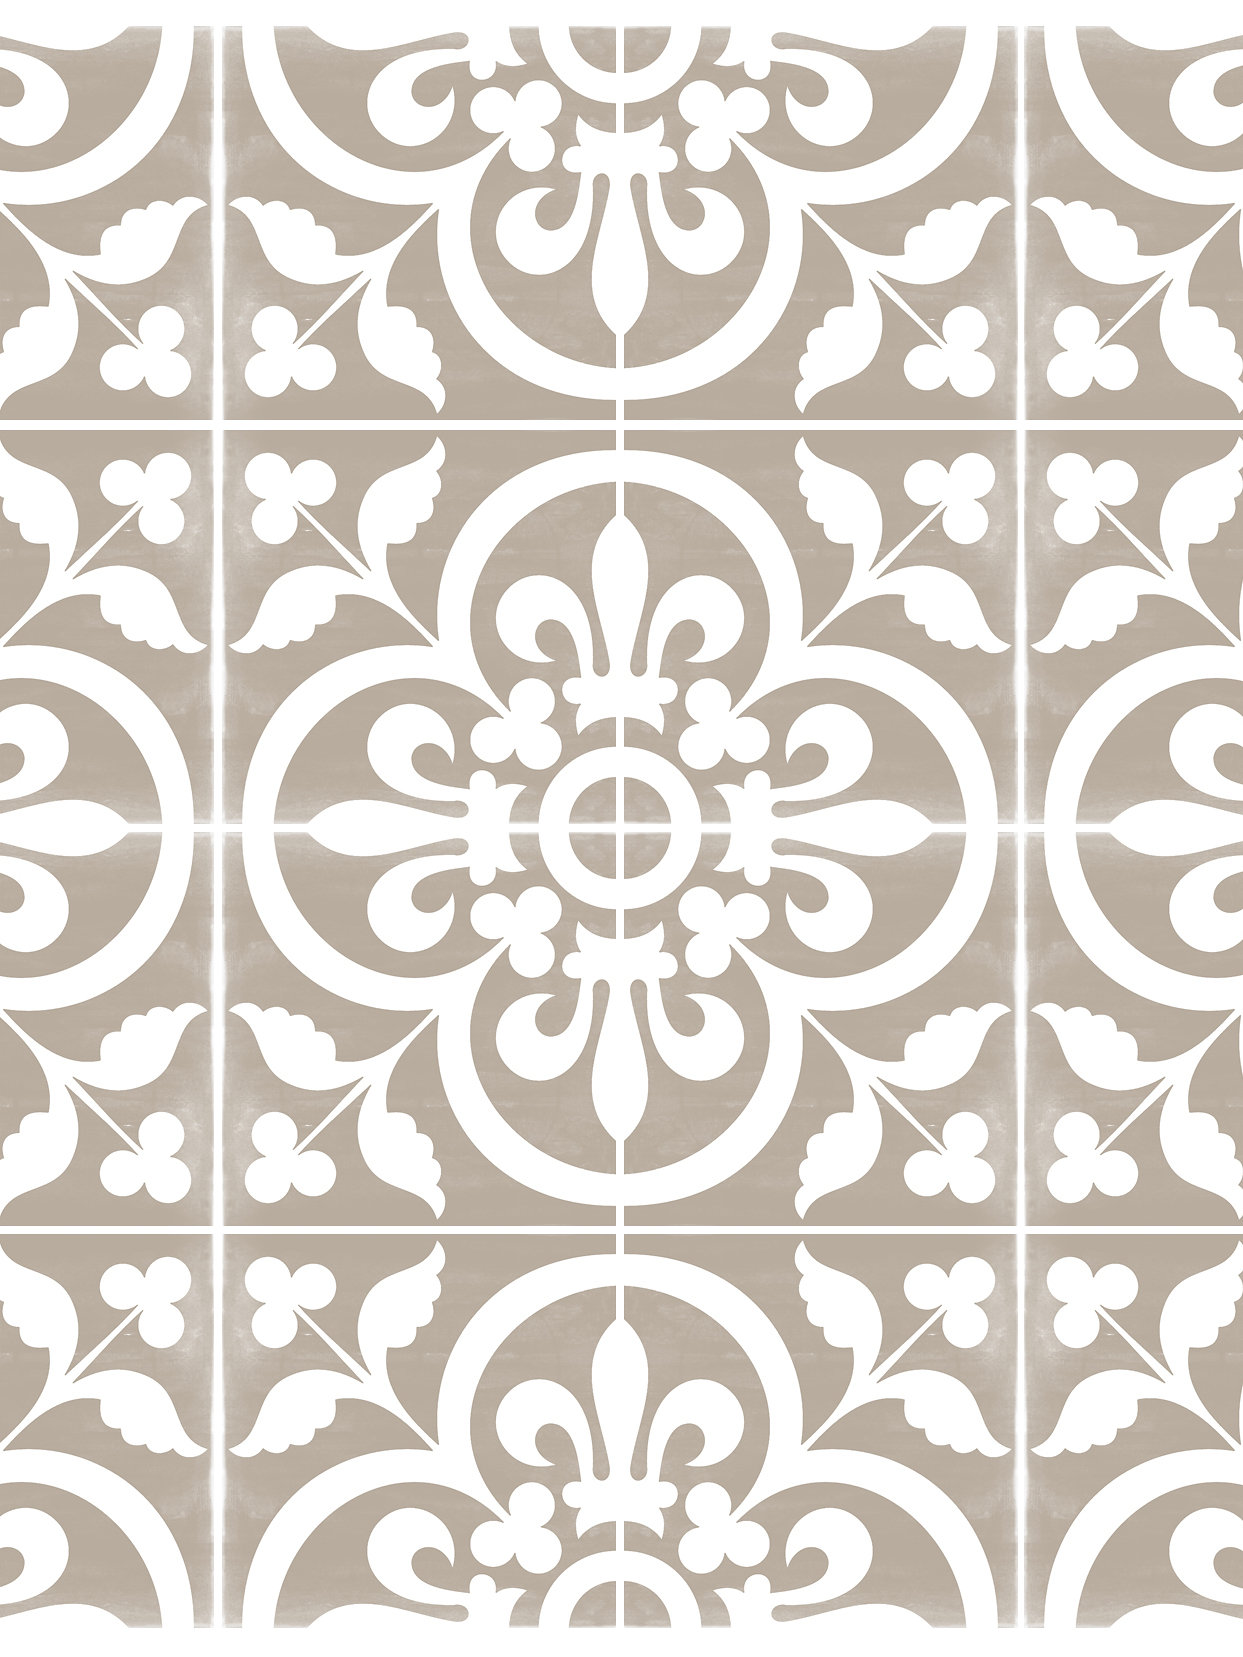 Tile decals quadrostyle vinyl floor tile sticker corona quadrostyle offers you a new way to renovate your floors without hiring a tradesman our vinyl floor tile stickers are designed to cover your old floor dailygadgetfo Choice Image